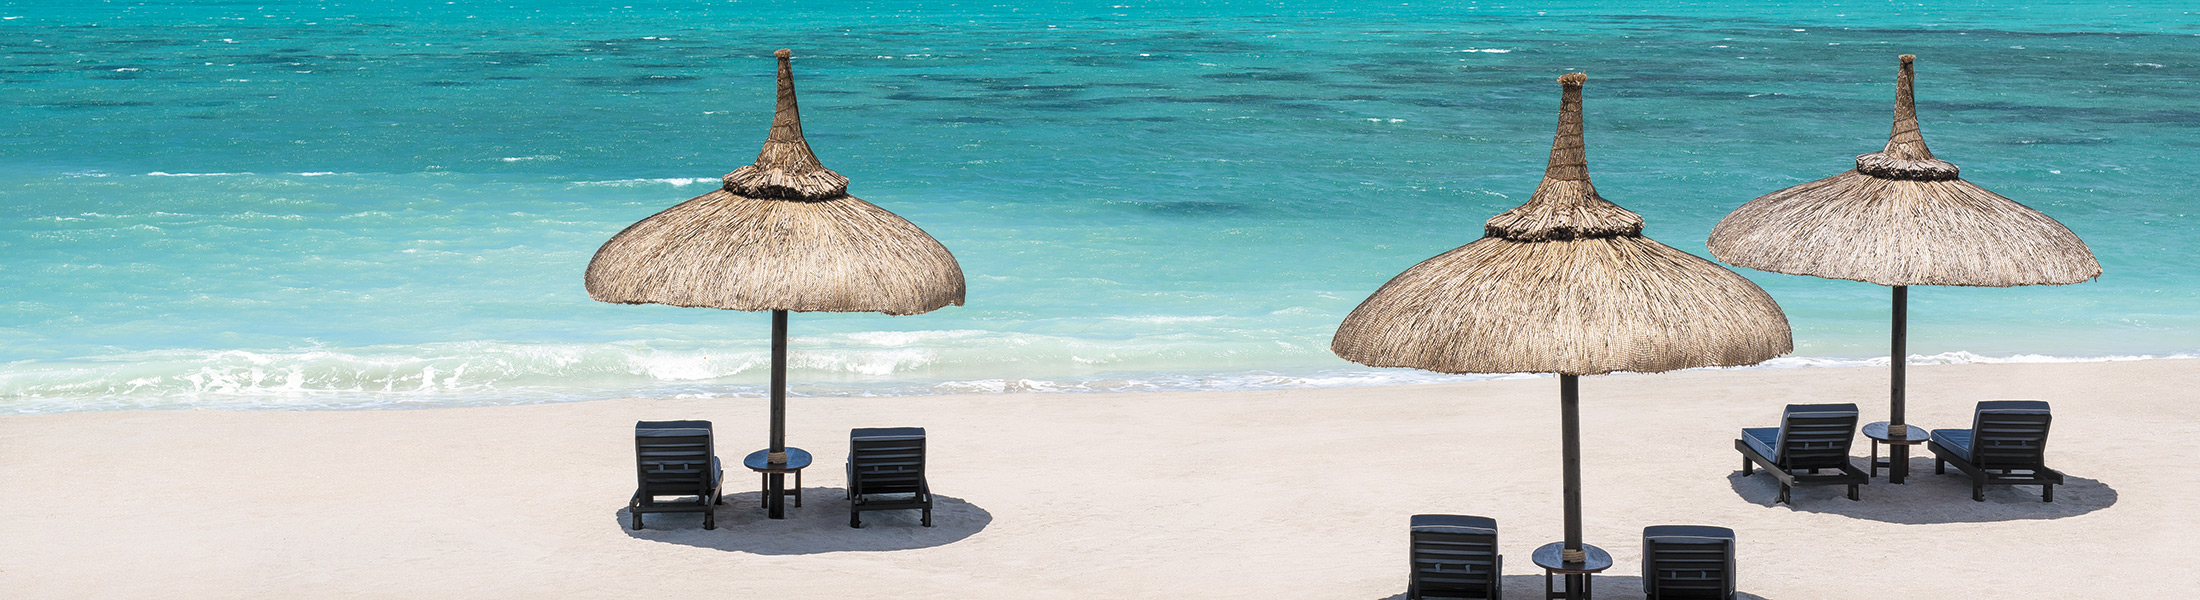 Sun lounges and umbrellas on the beach at Shangri-La's Le Touessrok Mauritius